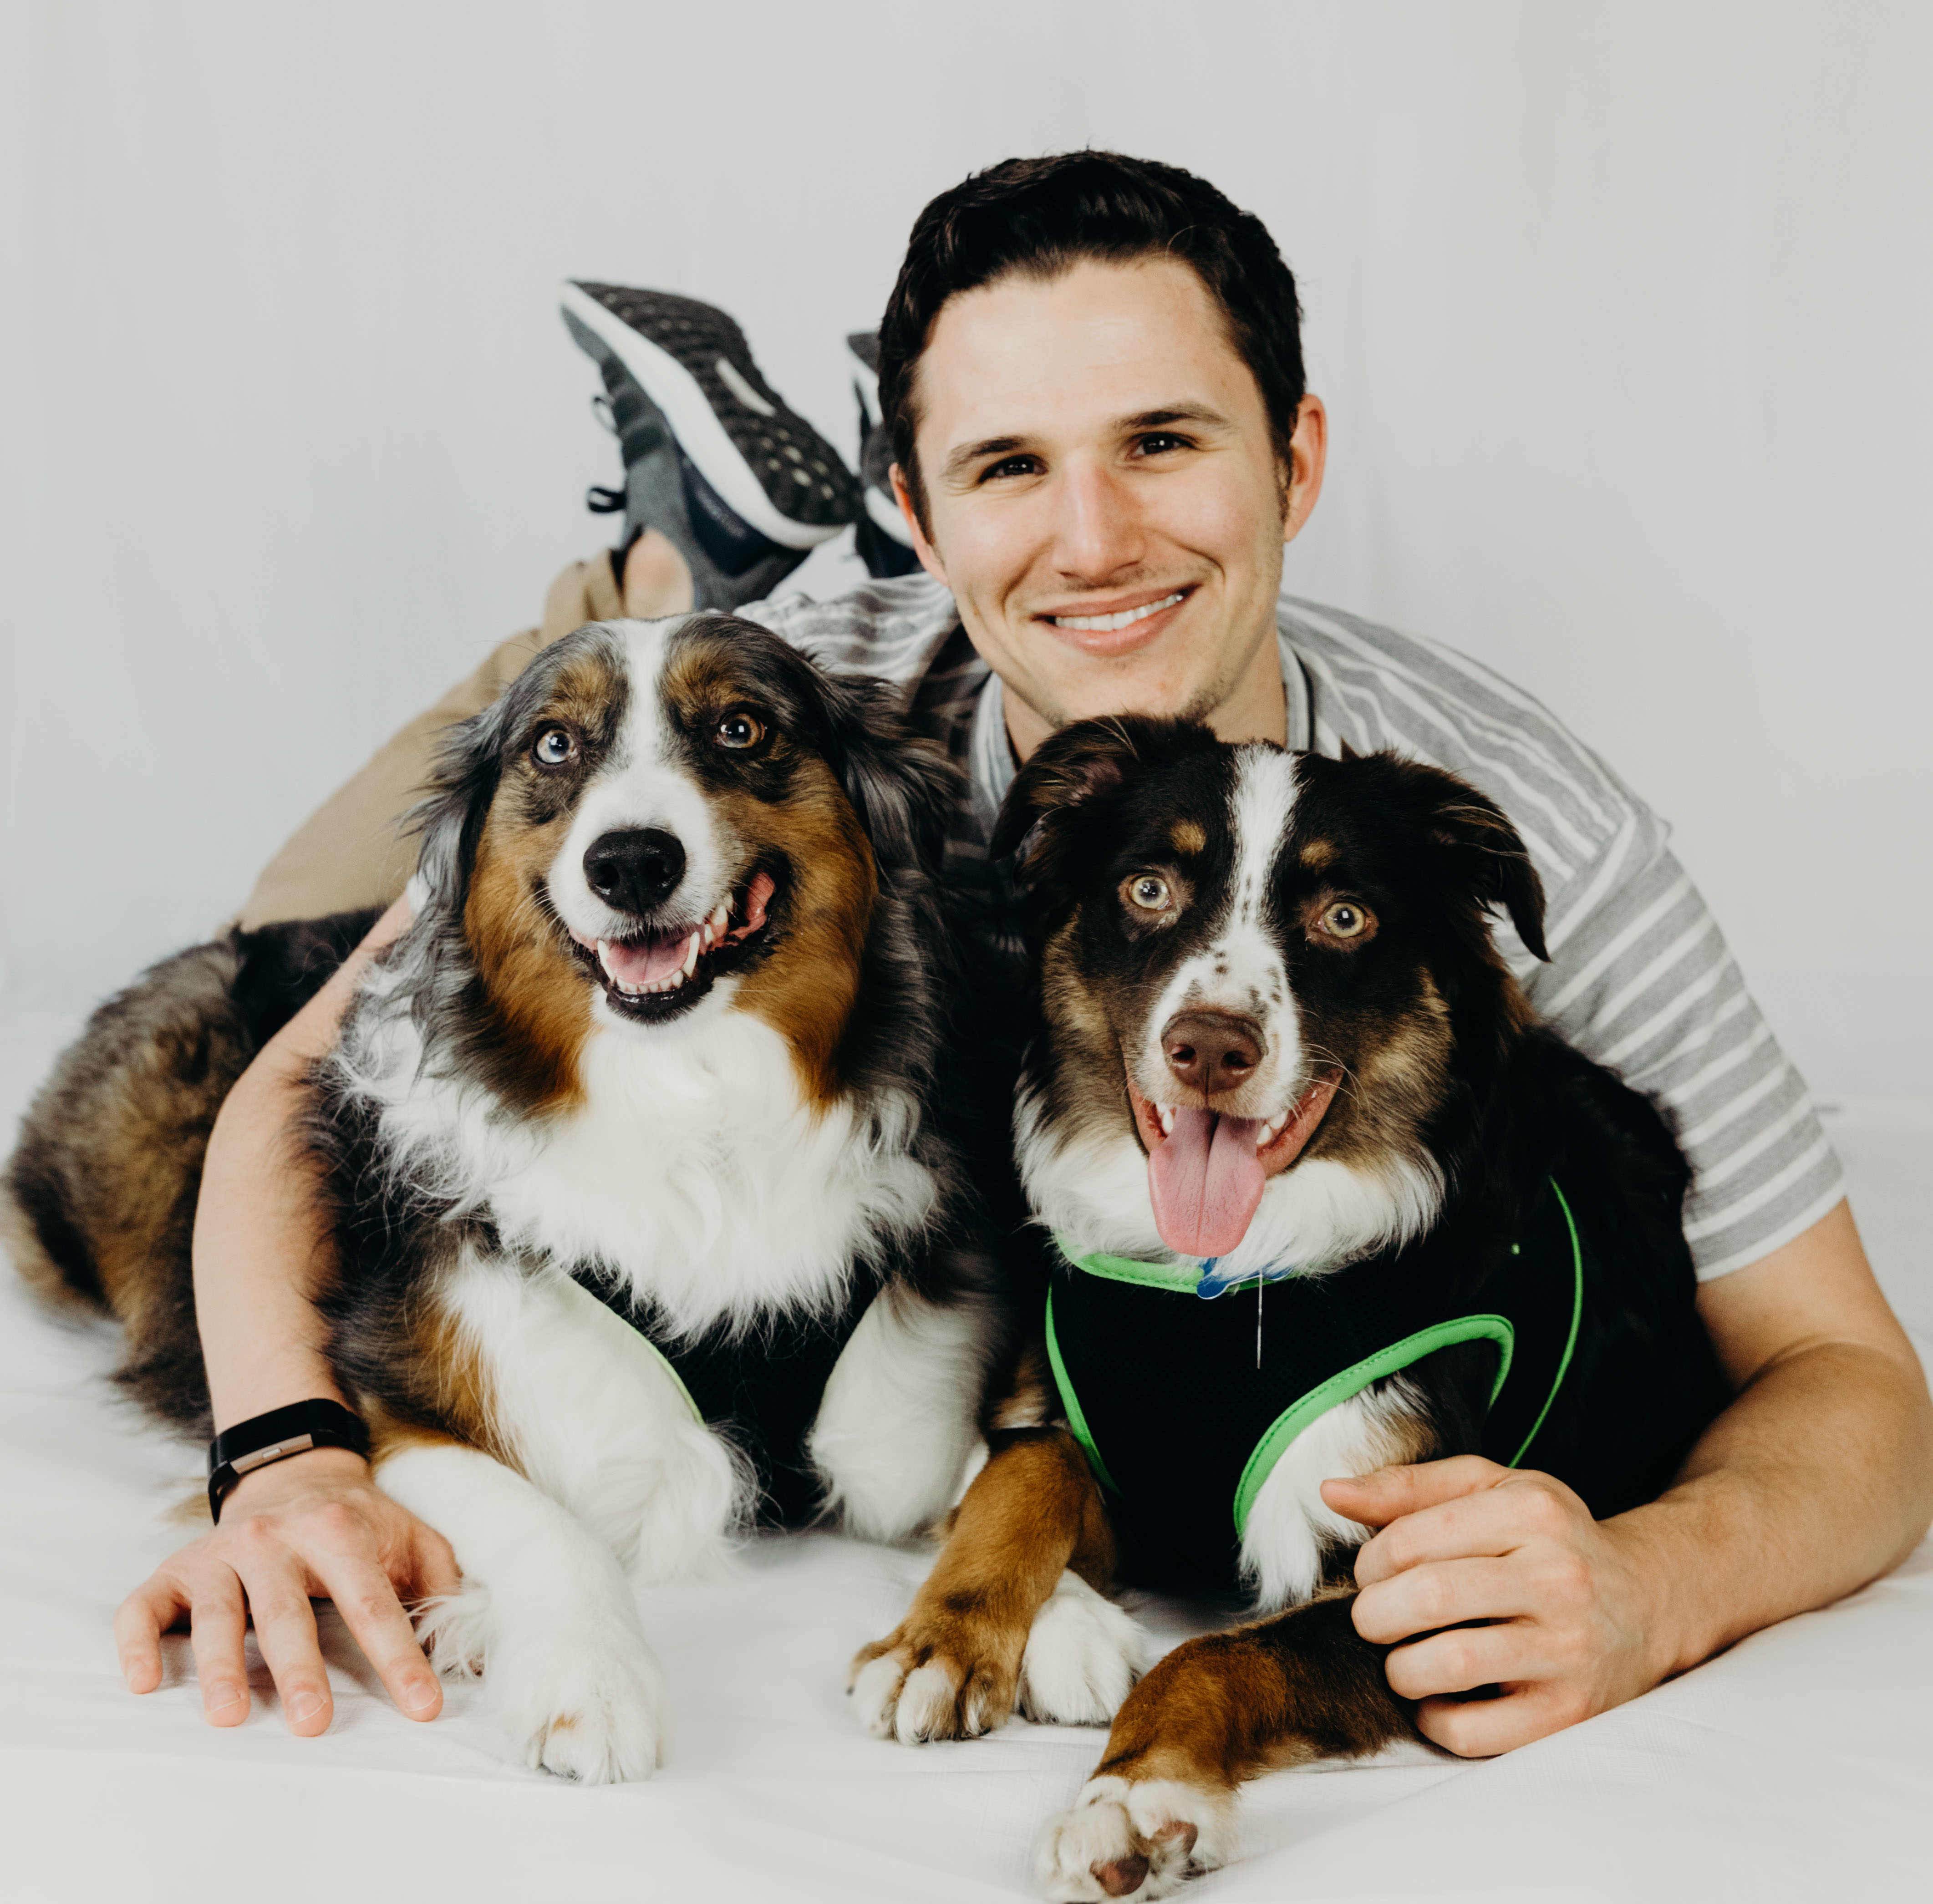 Sales consultant Garrett with his dogs